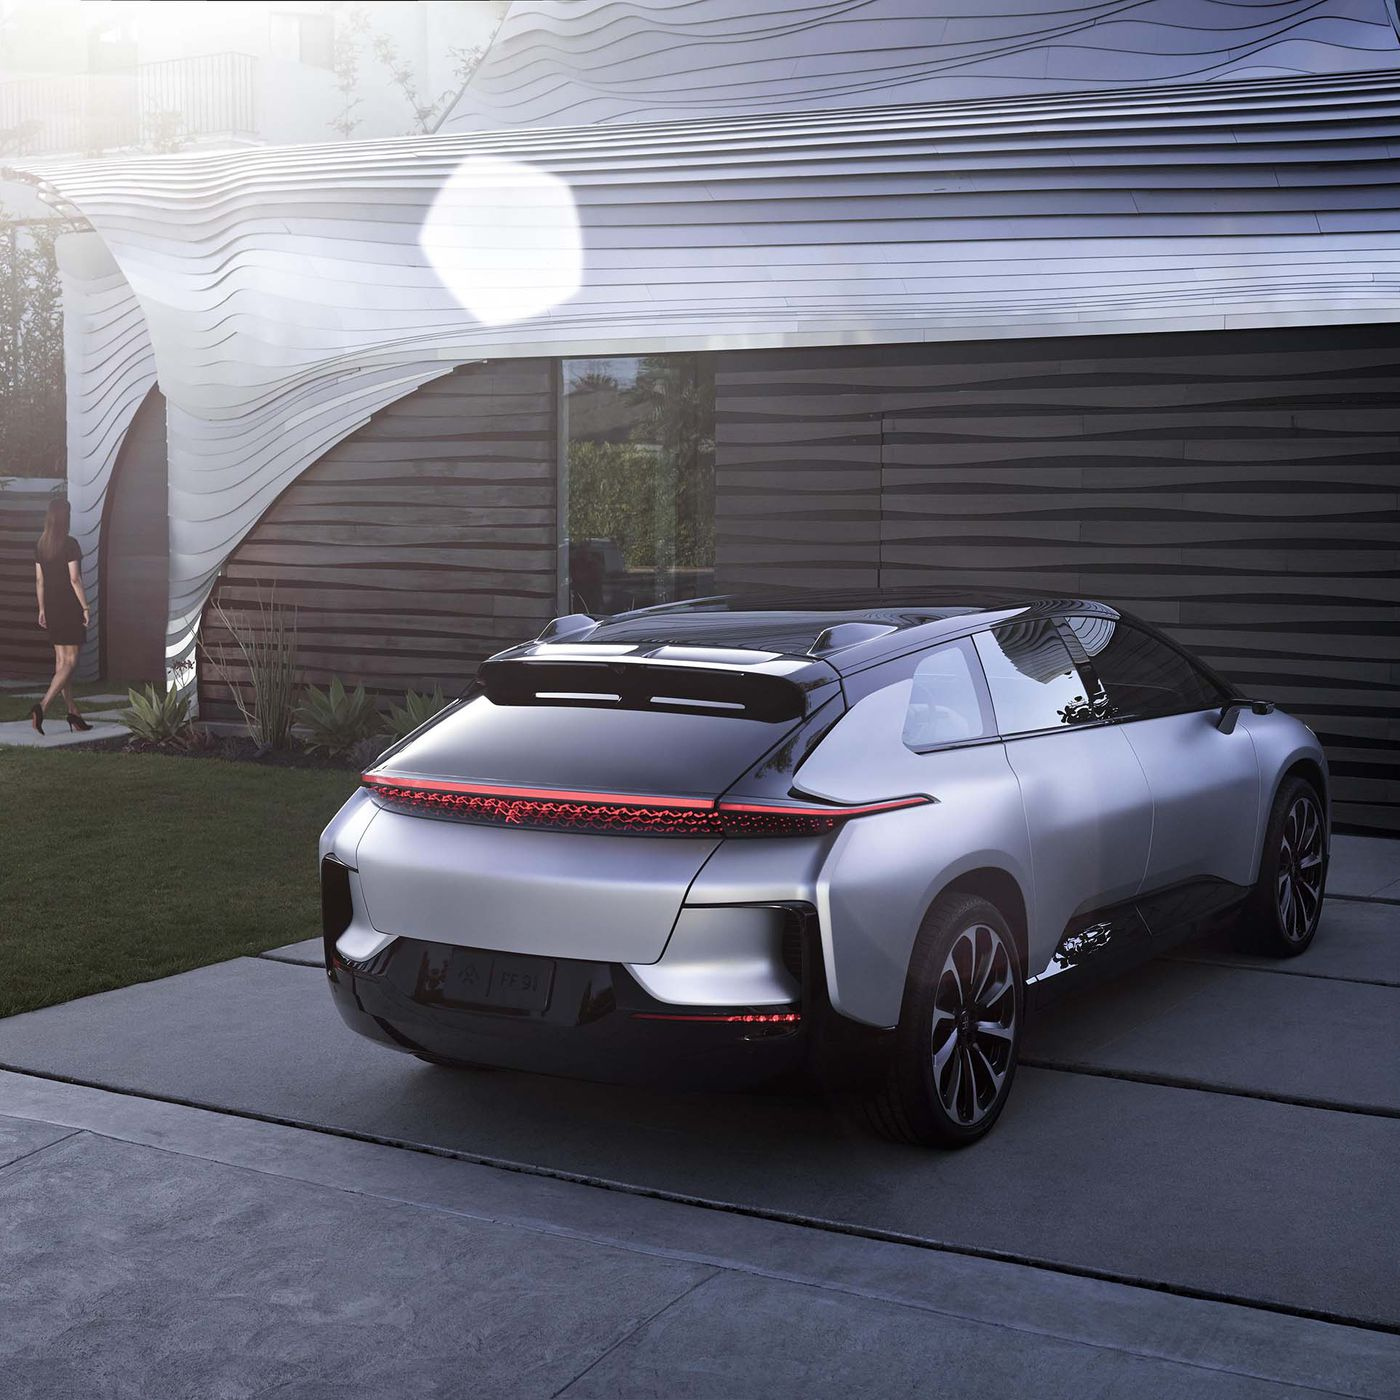 Faraday Future just sold its headquarters to help keep the company